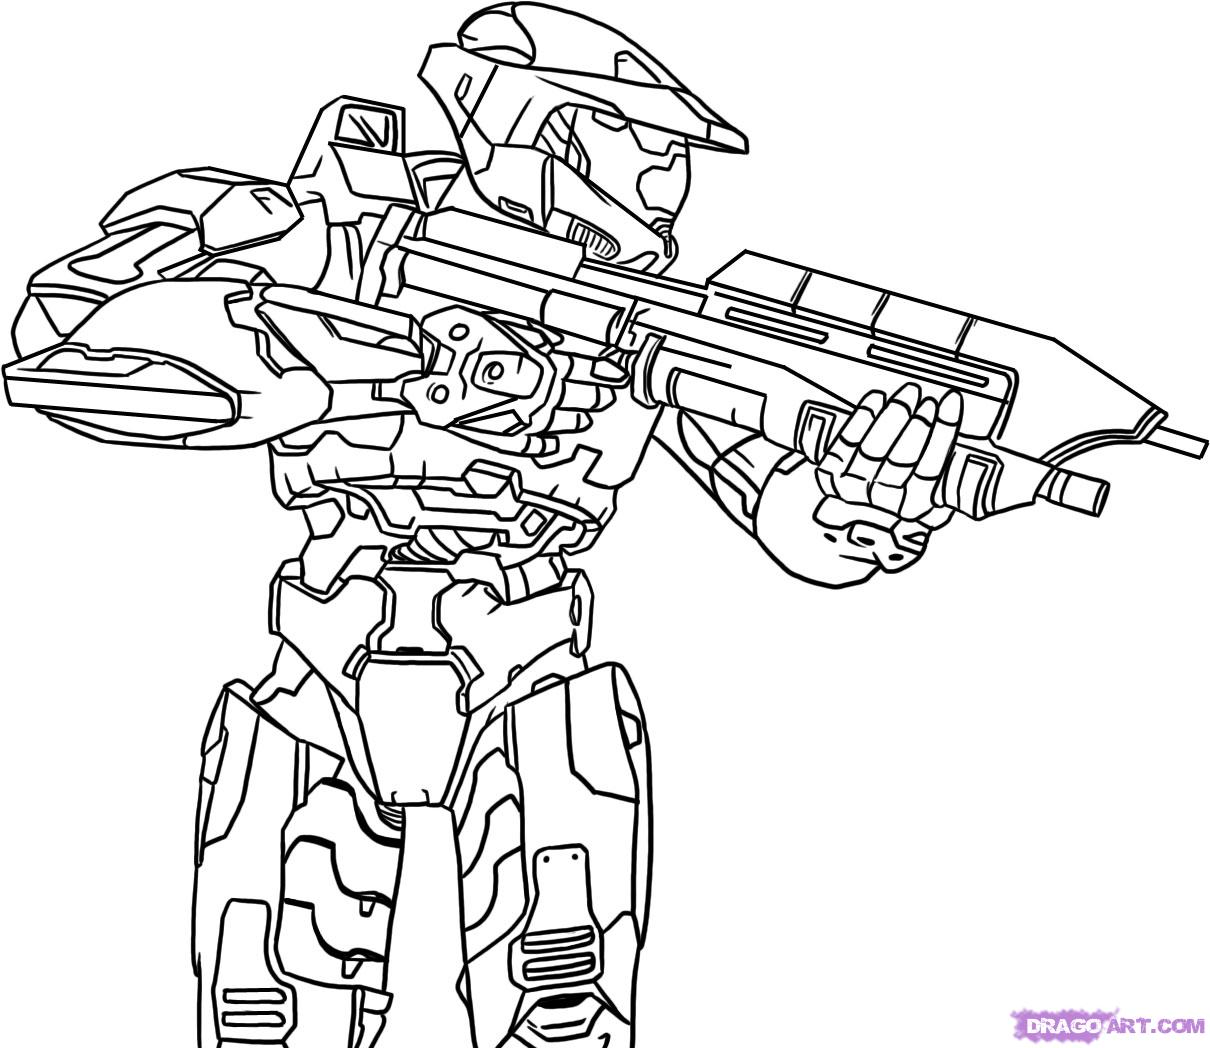 Best Website For Free Coloring Pages : Halo coloring pages to download and print for free